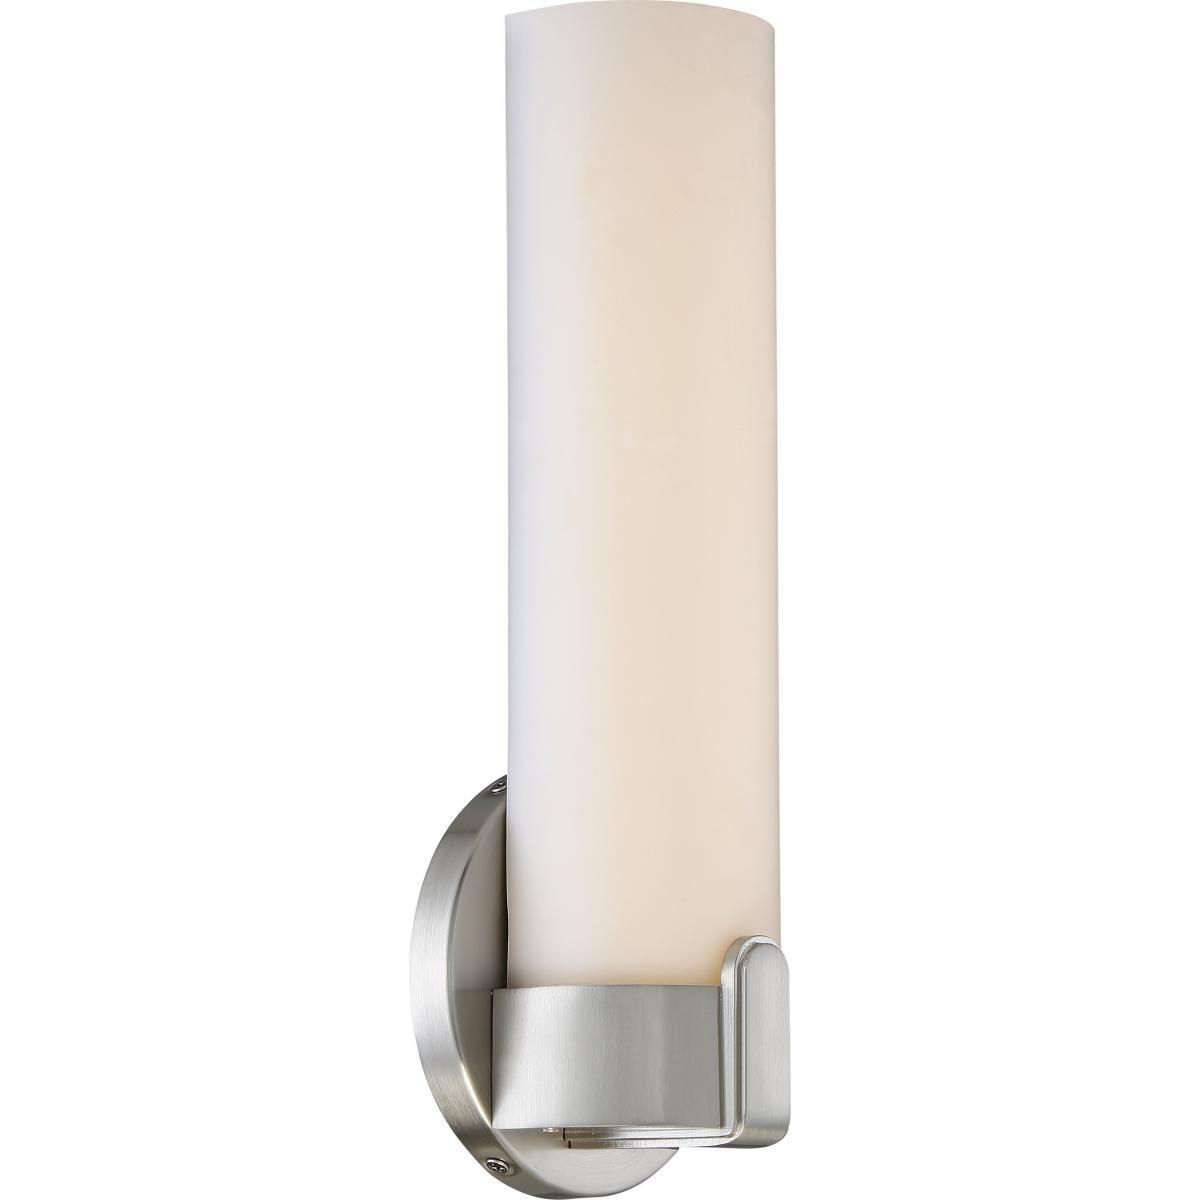 Loop Single LED Wall Sconce Brushed Nickel Finish Wall Nuvo Lighting